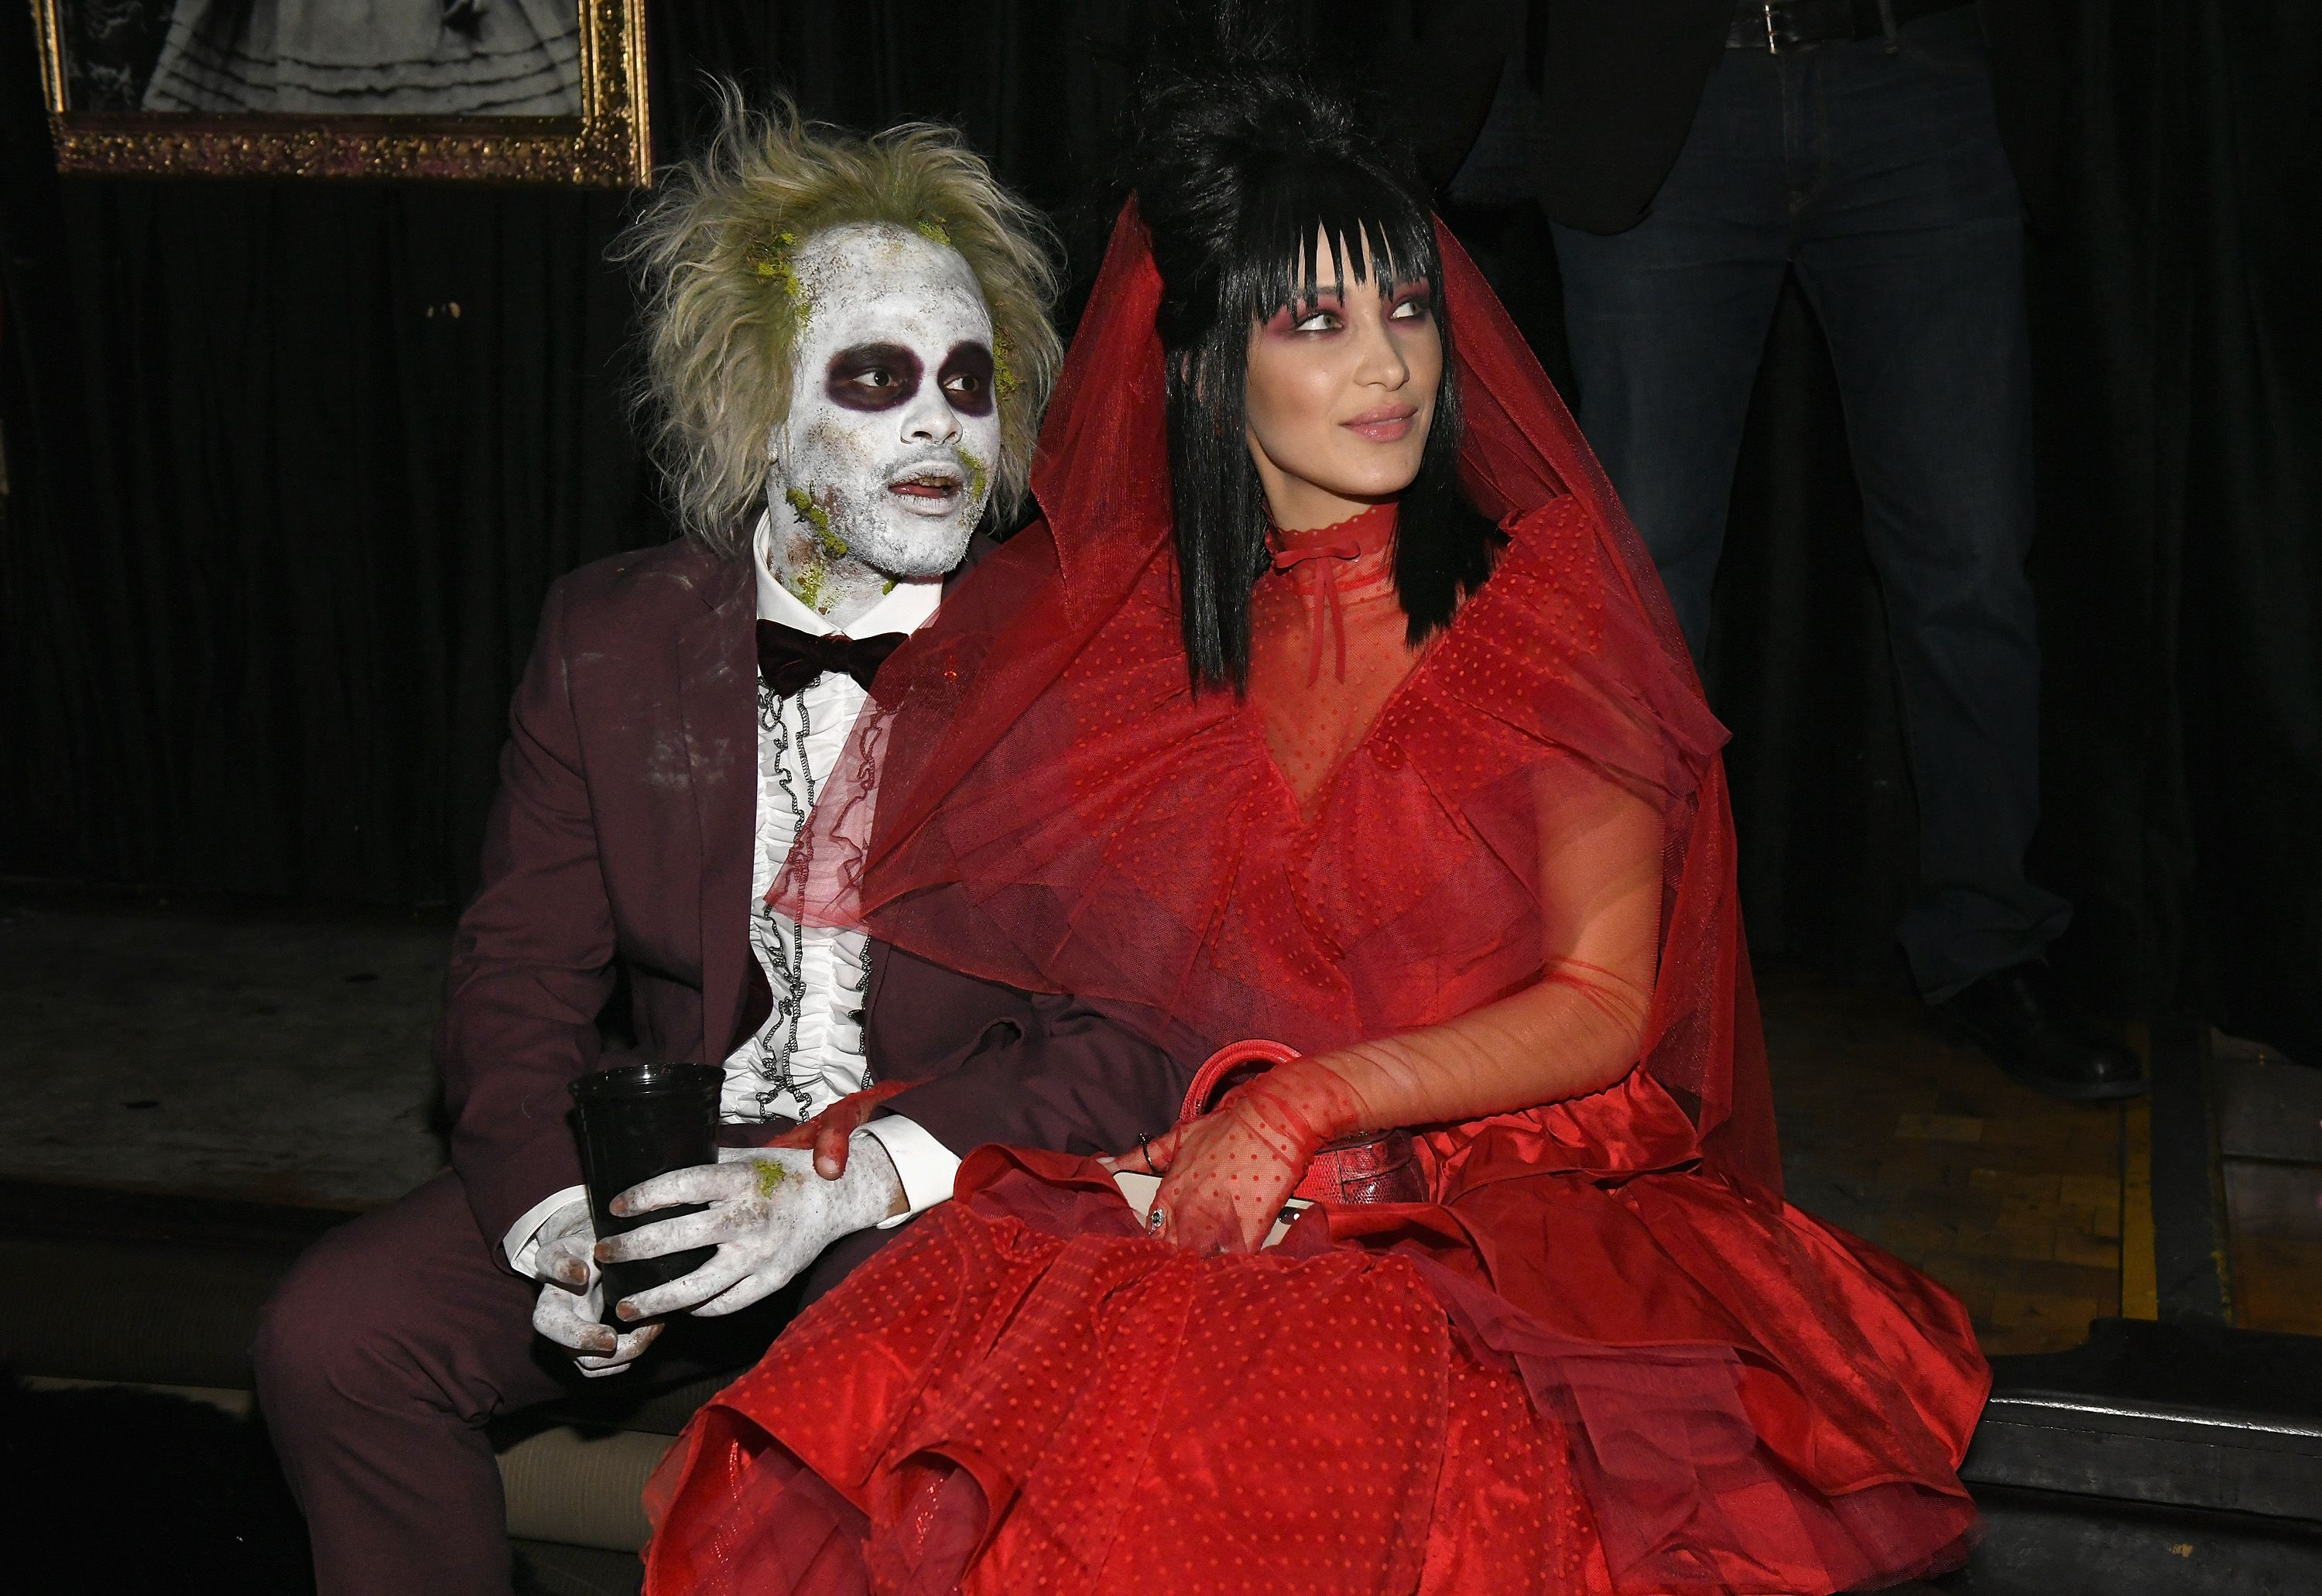 Check out these fun suggestions to inspire you with some great couples costume ideas for your upcoming halloween celebration. Celebrity Couple Costumes Ideas 2019 Outrageous Celebrity Couple Halloween Costumes